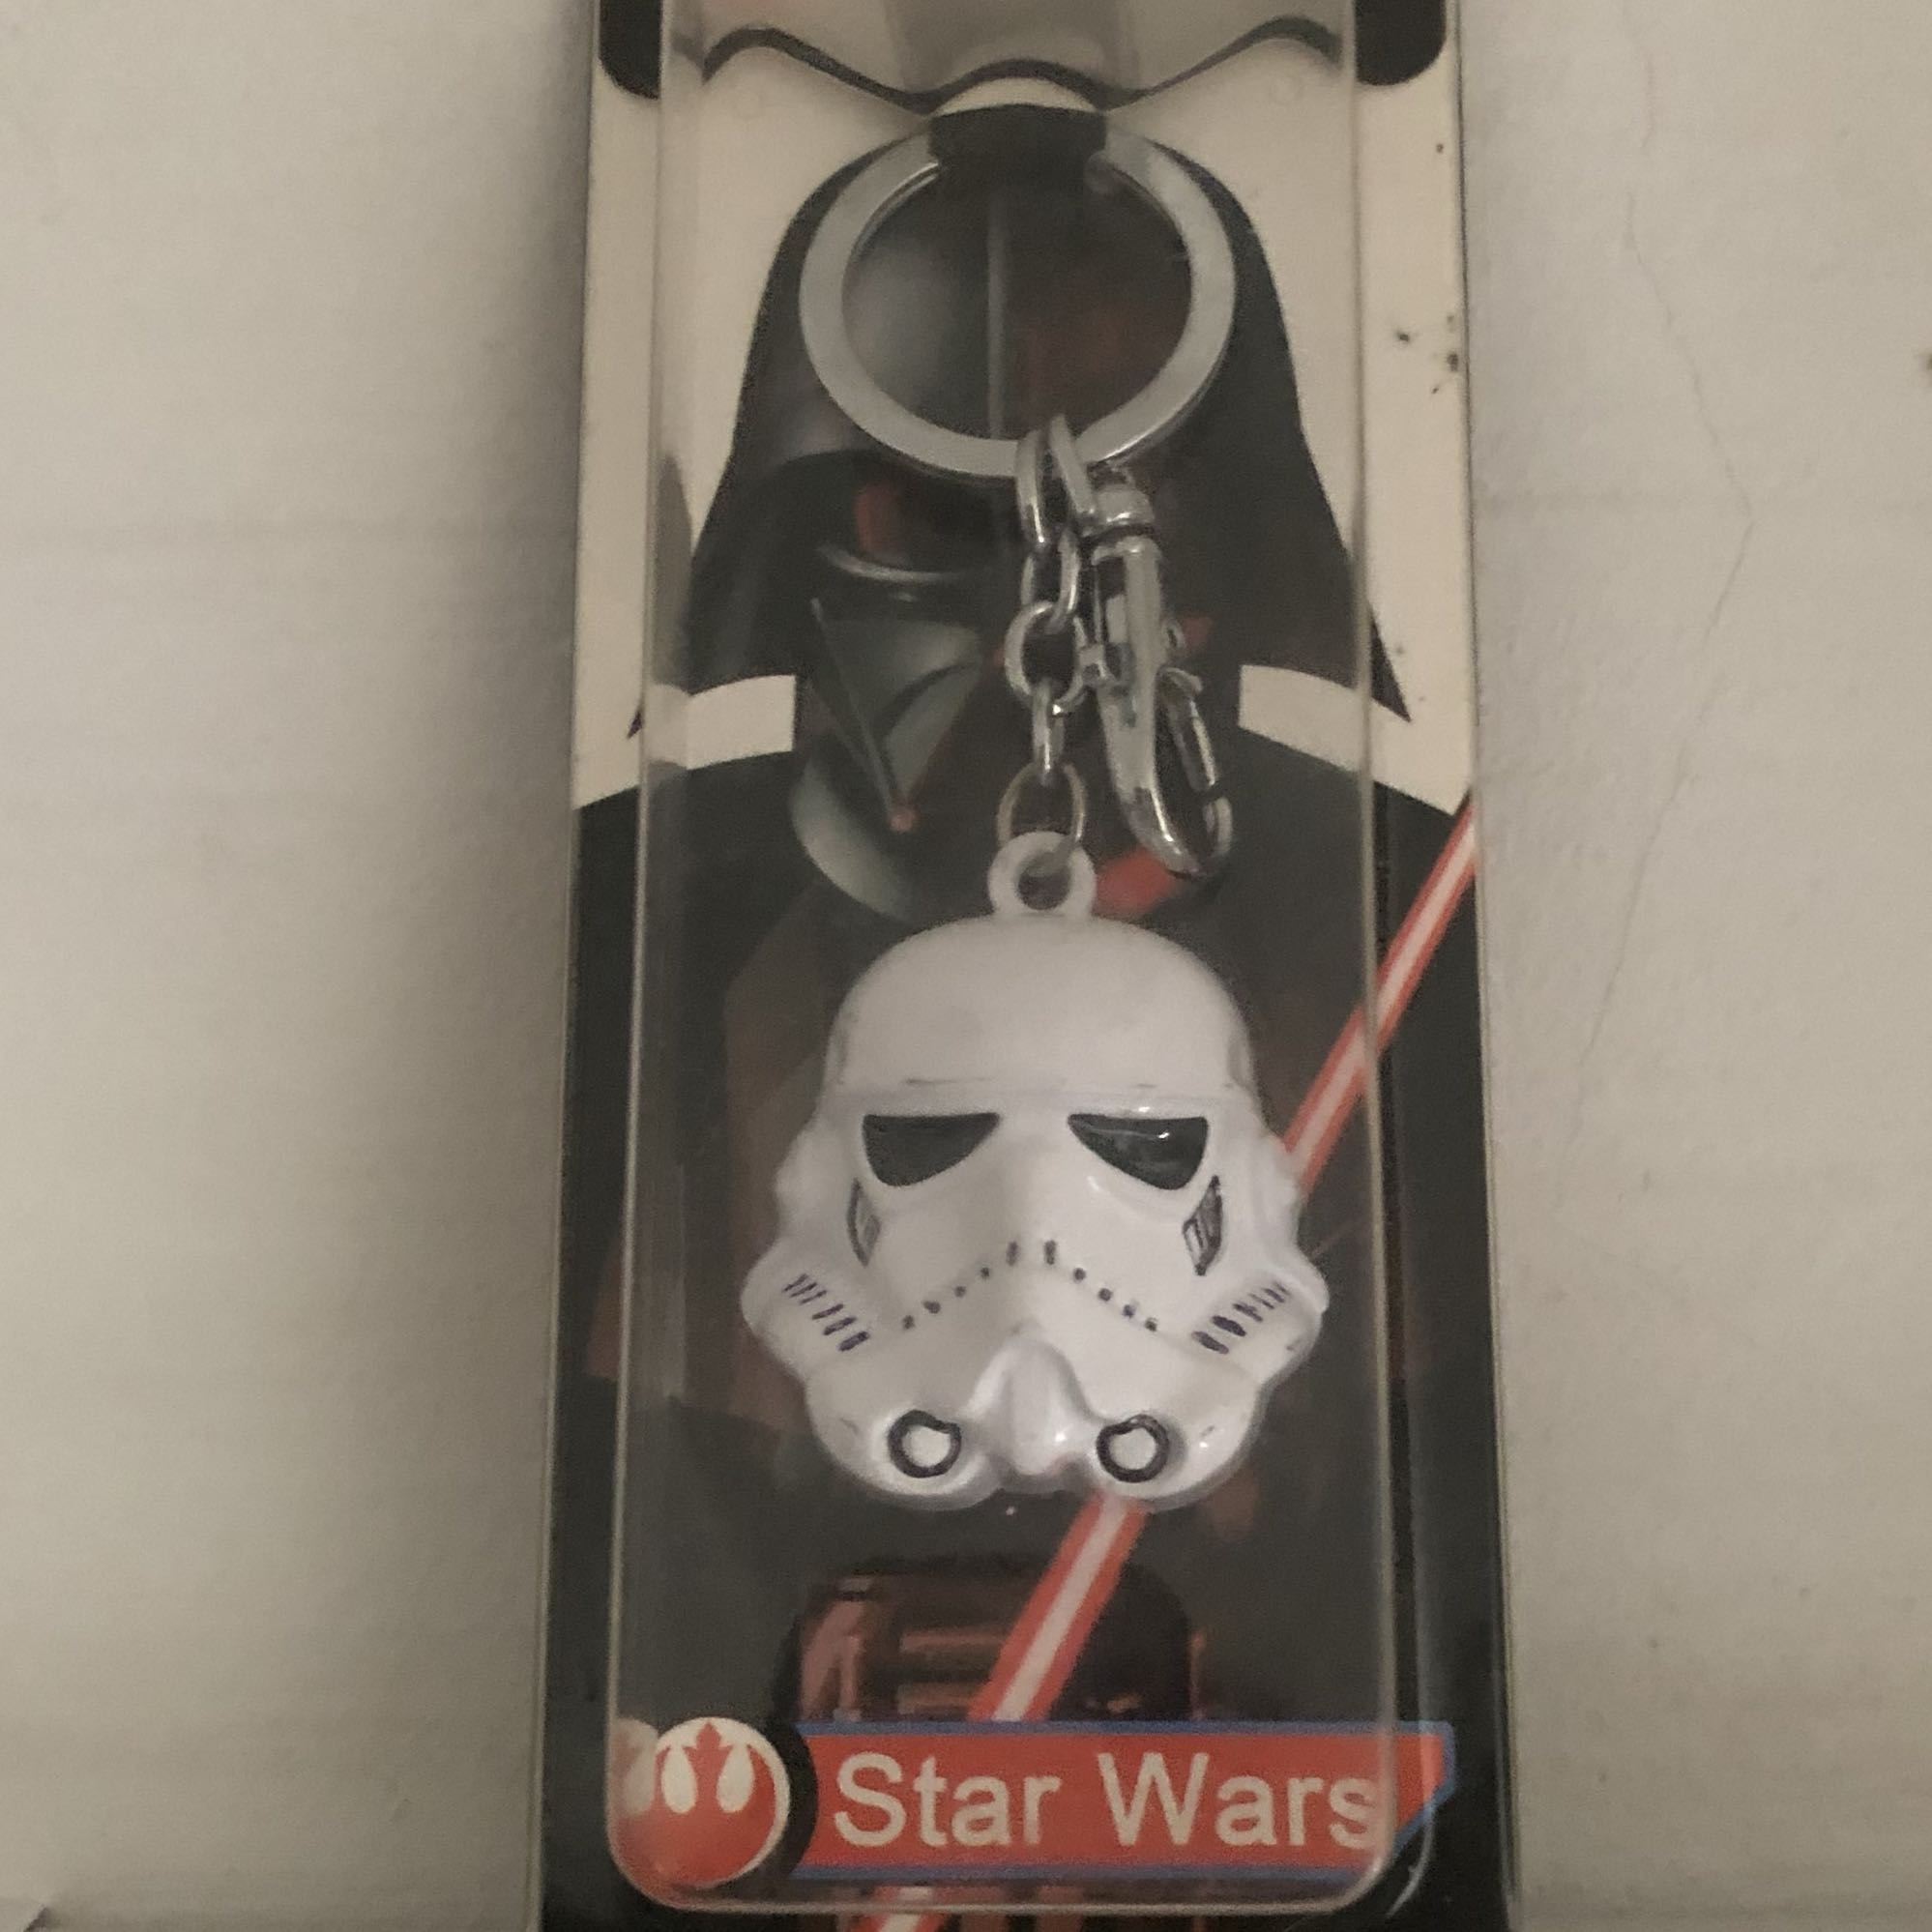 Star Wars Stormtrooper Keychain Mens Fashion Accessories Others